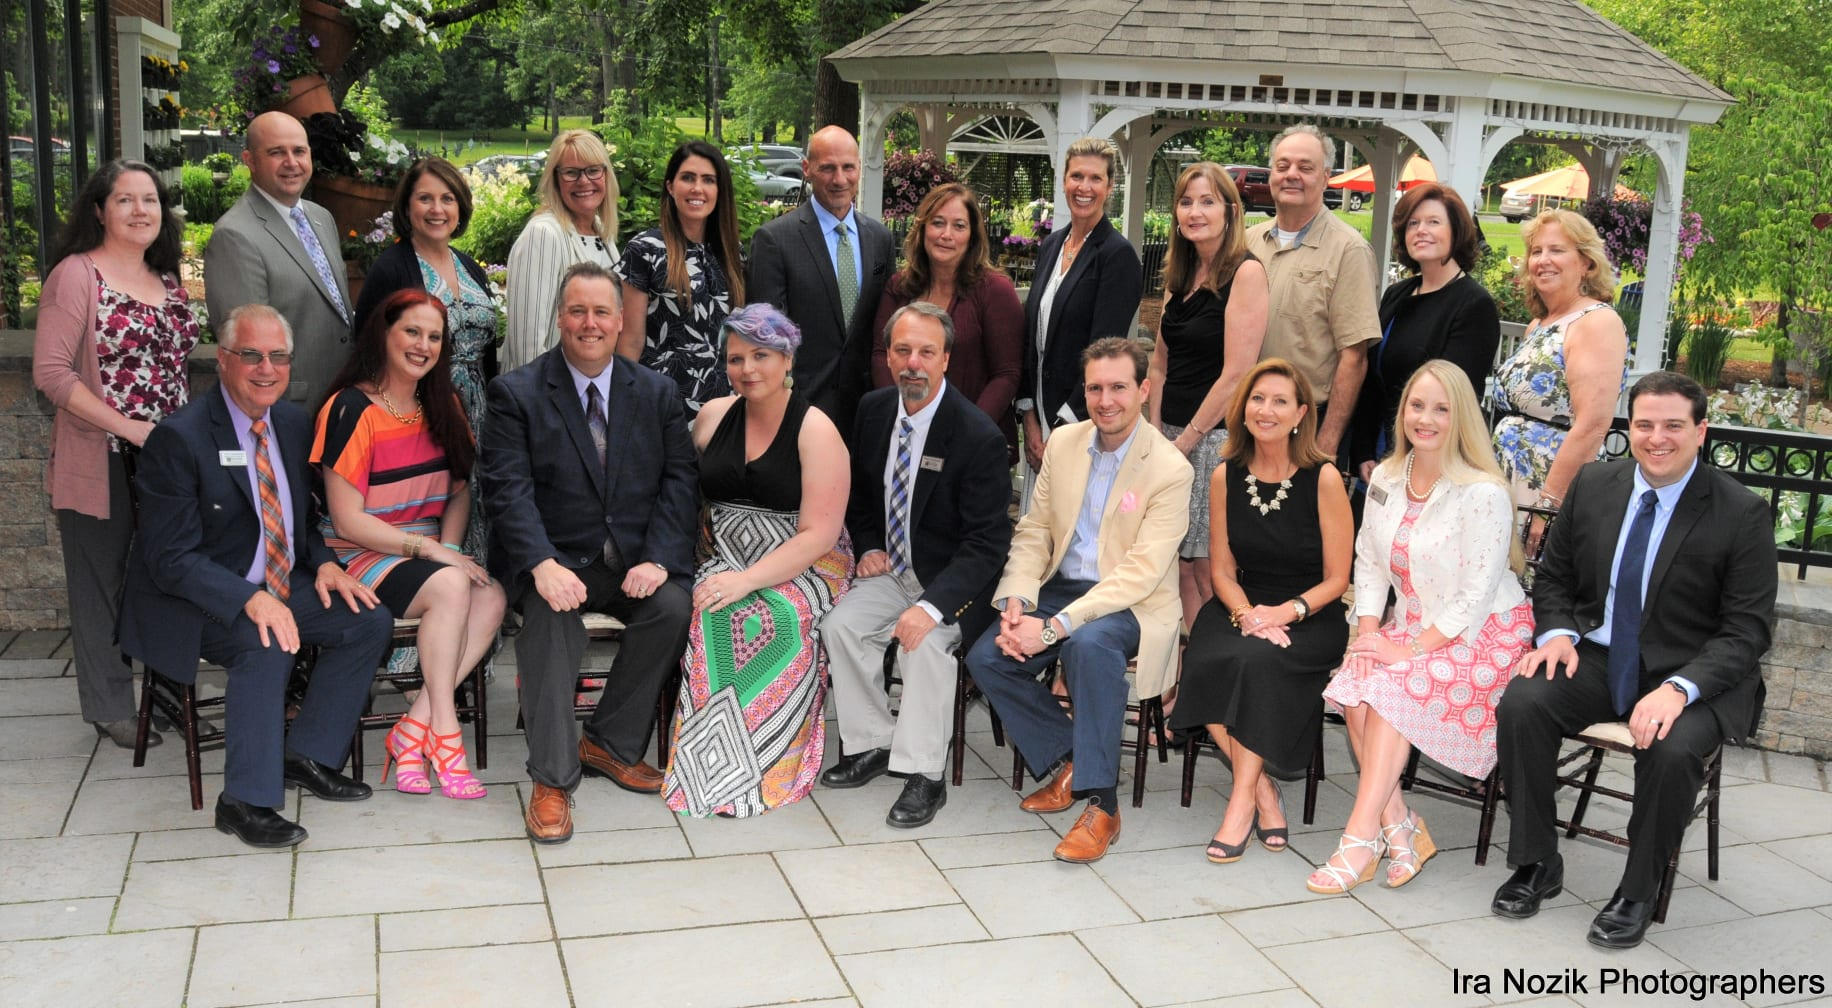 West Hartford Chamber of Commerce Board of Directors